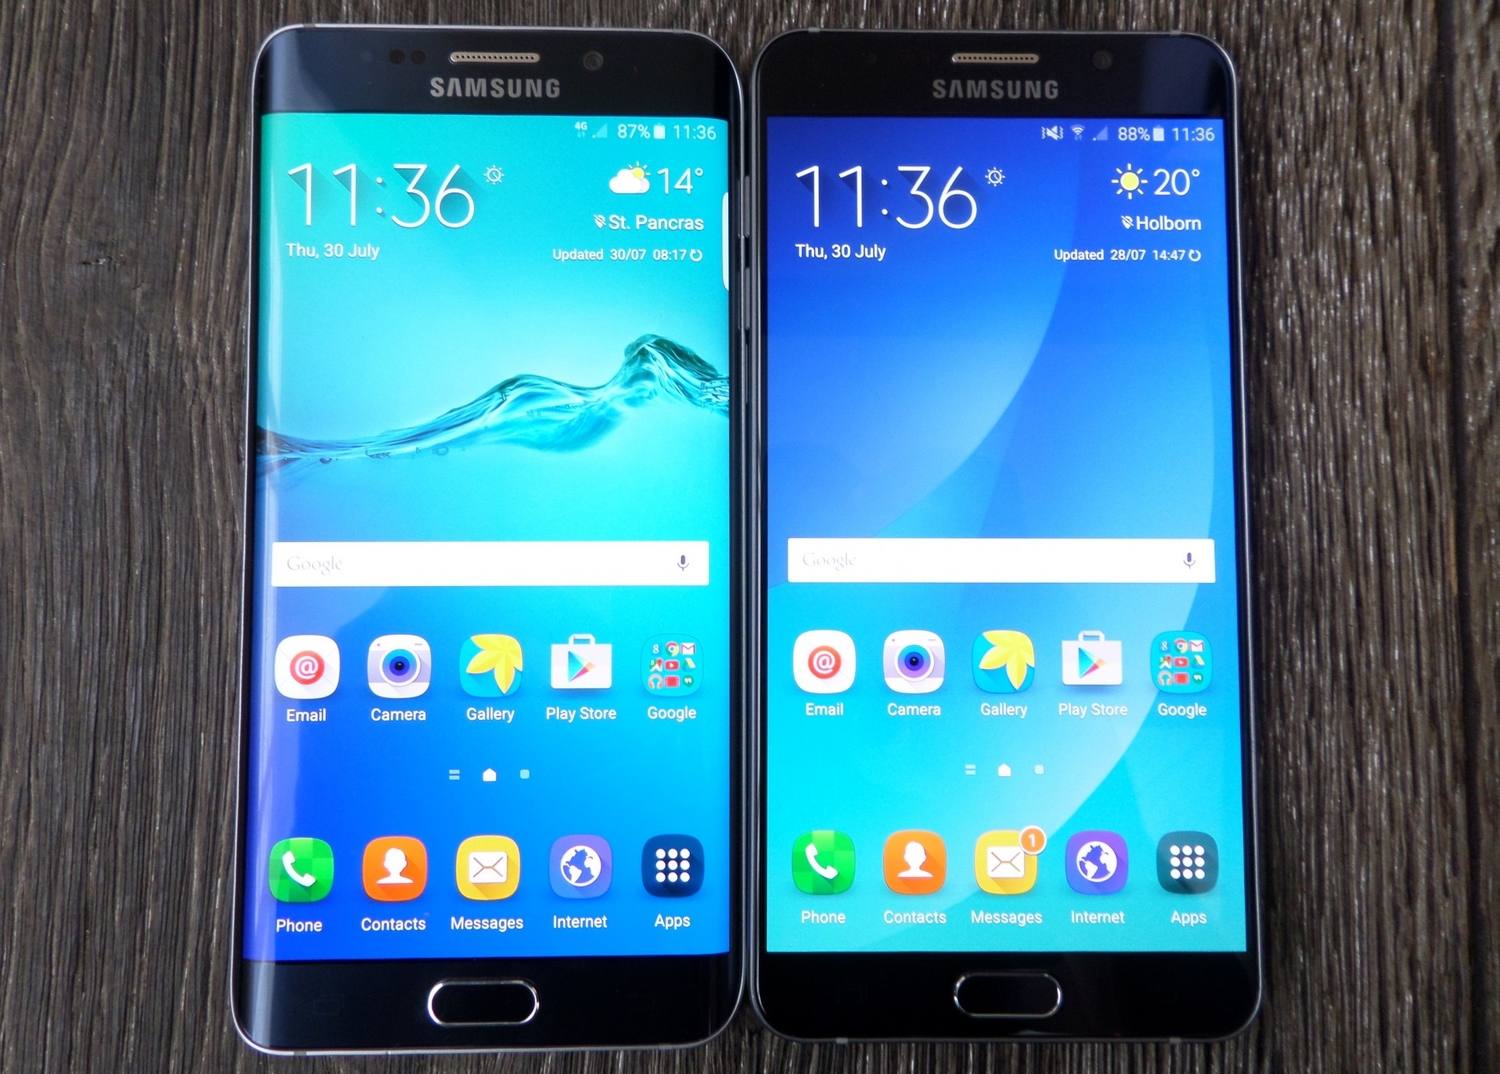 samsung galaxy s6 edge vs note 4